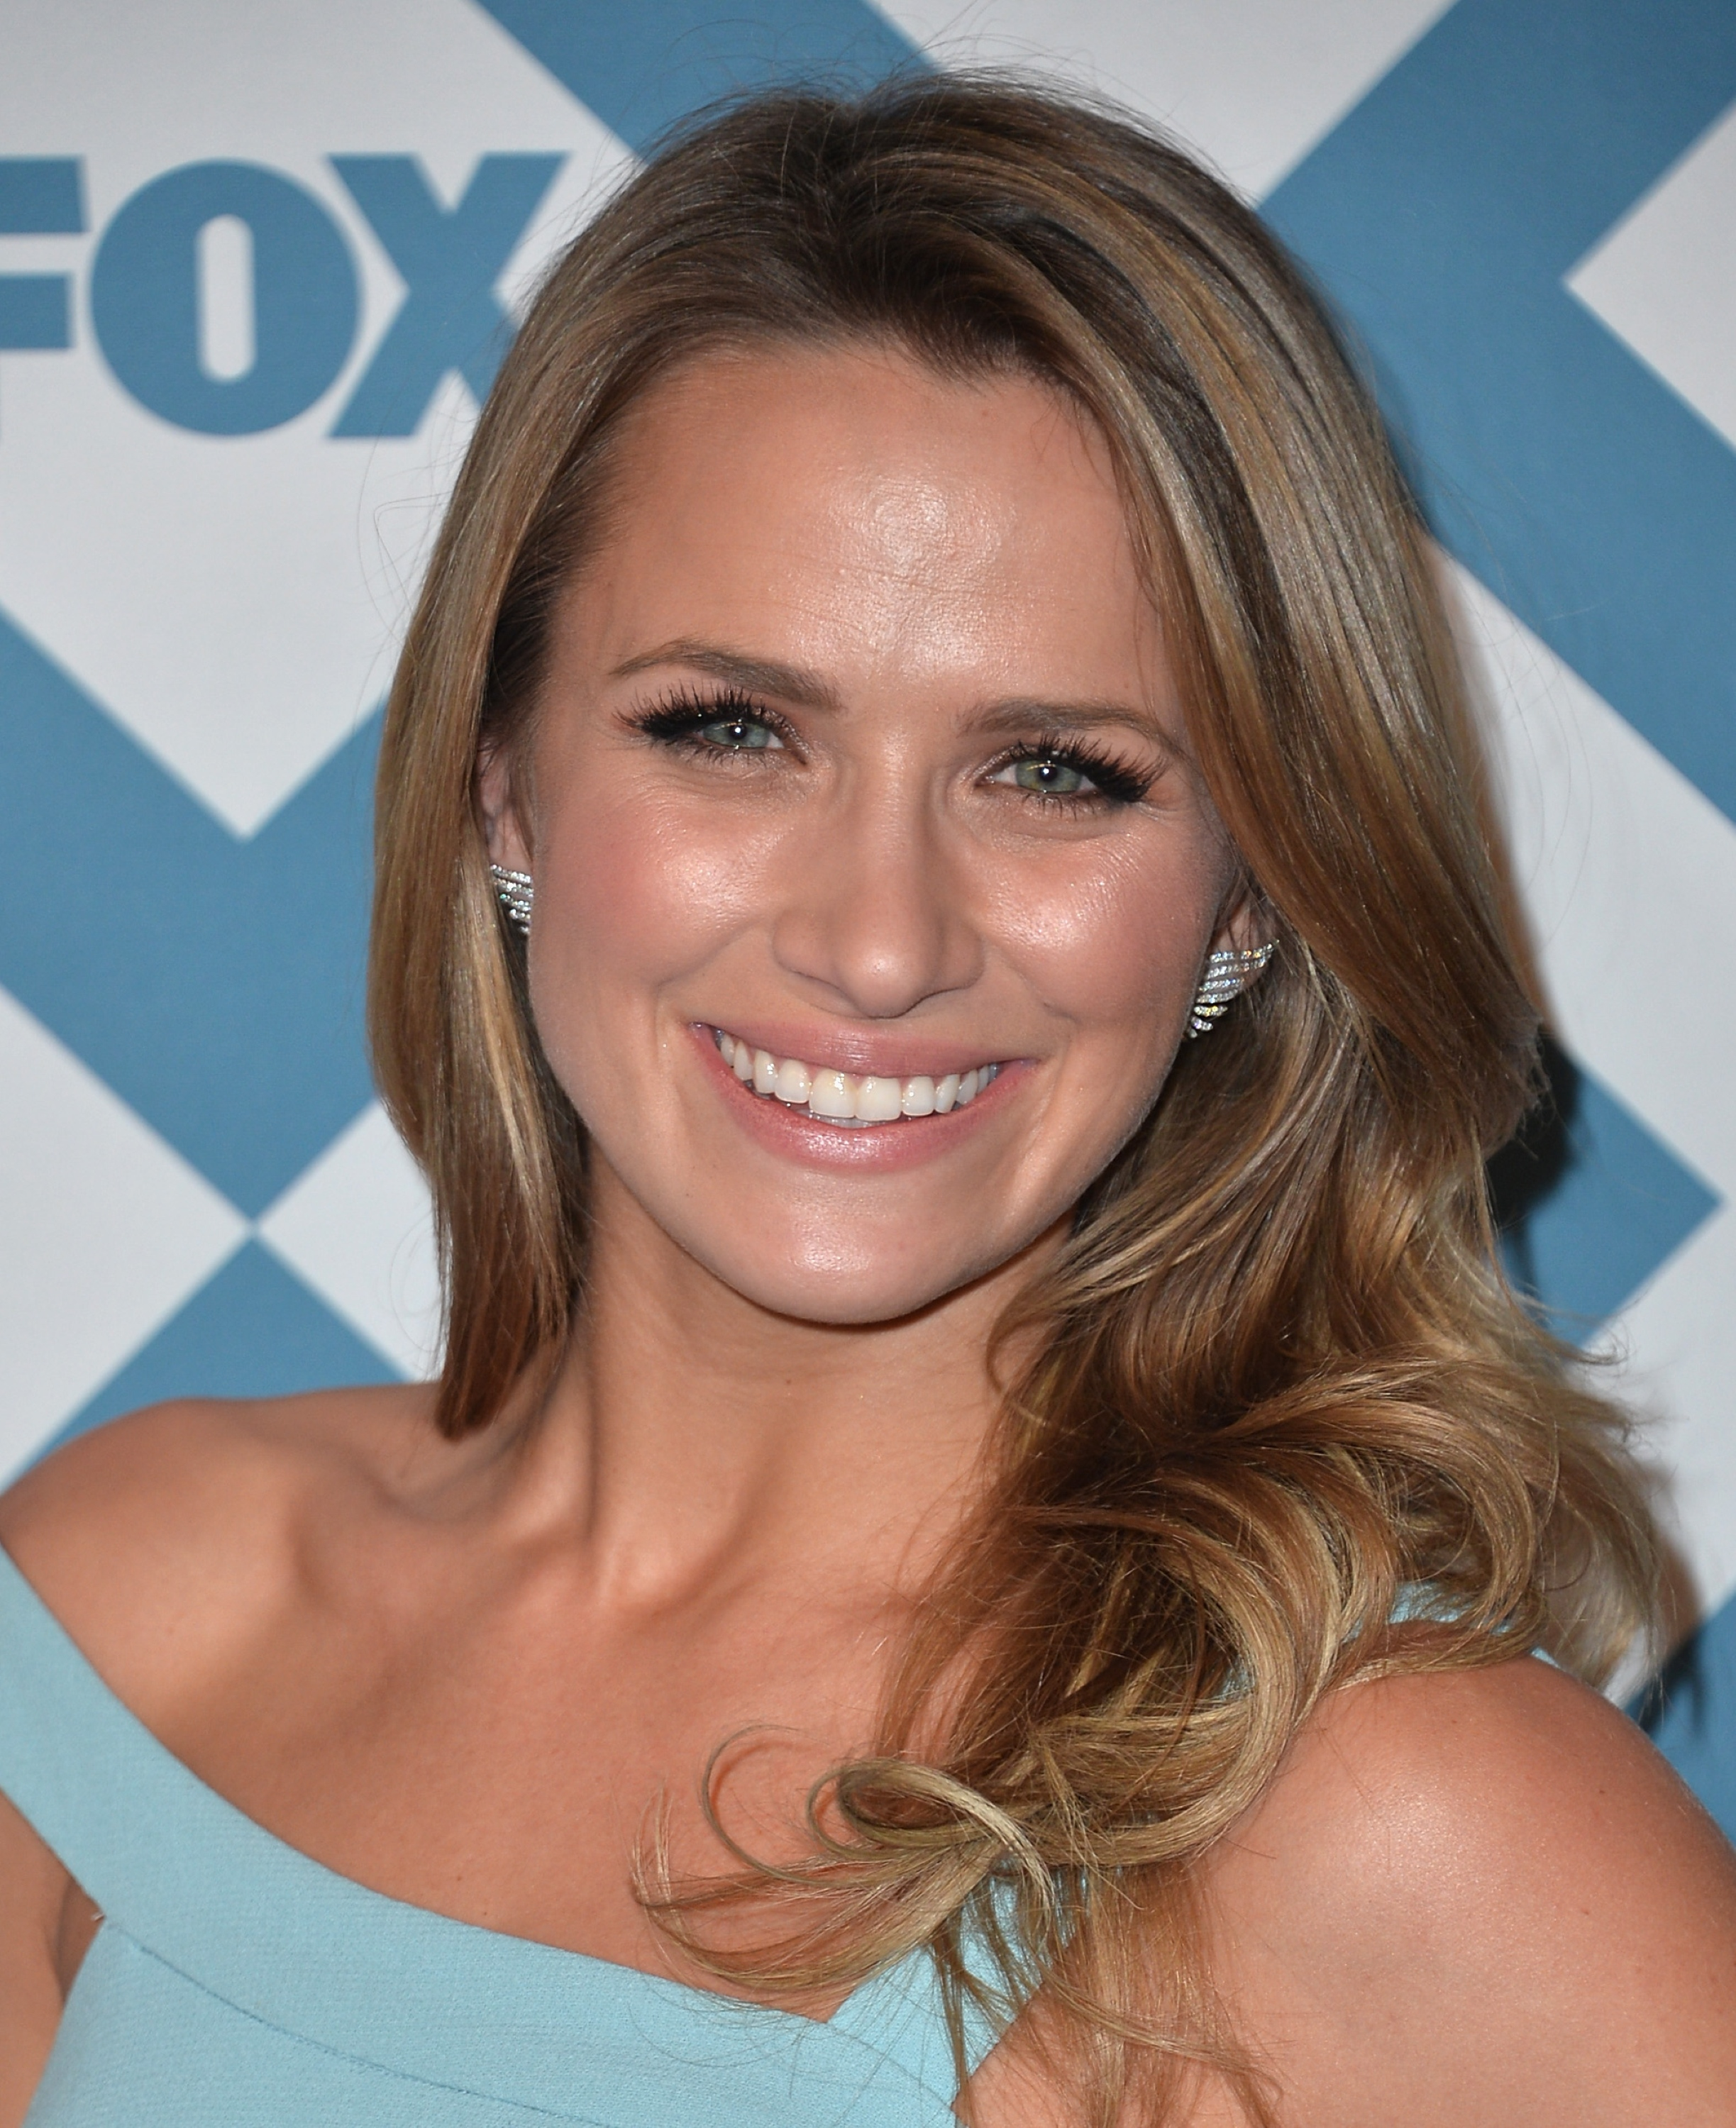 Shantel VanSanten earned a  million dollar salary - leaving the net worth at 5 million in 2017